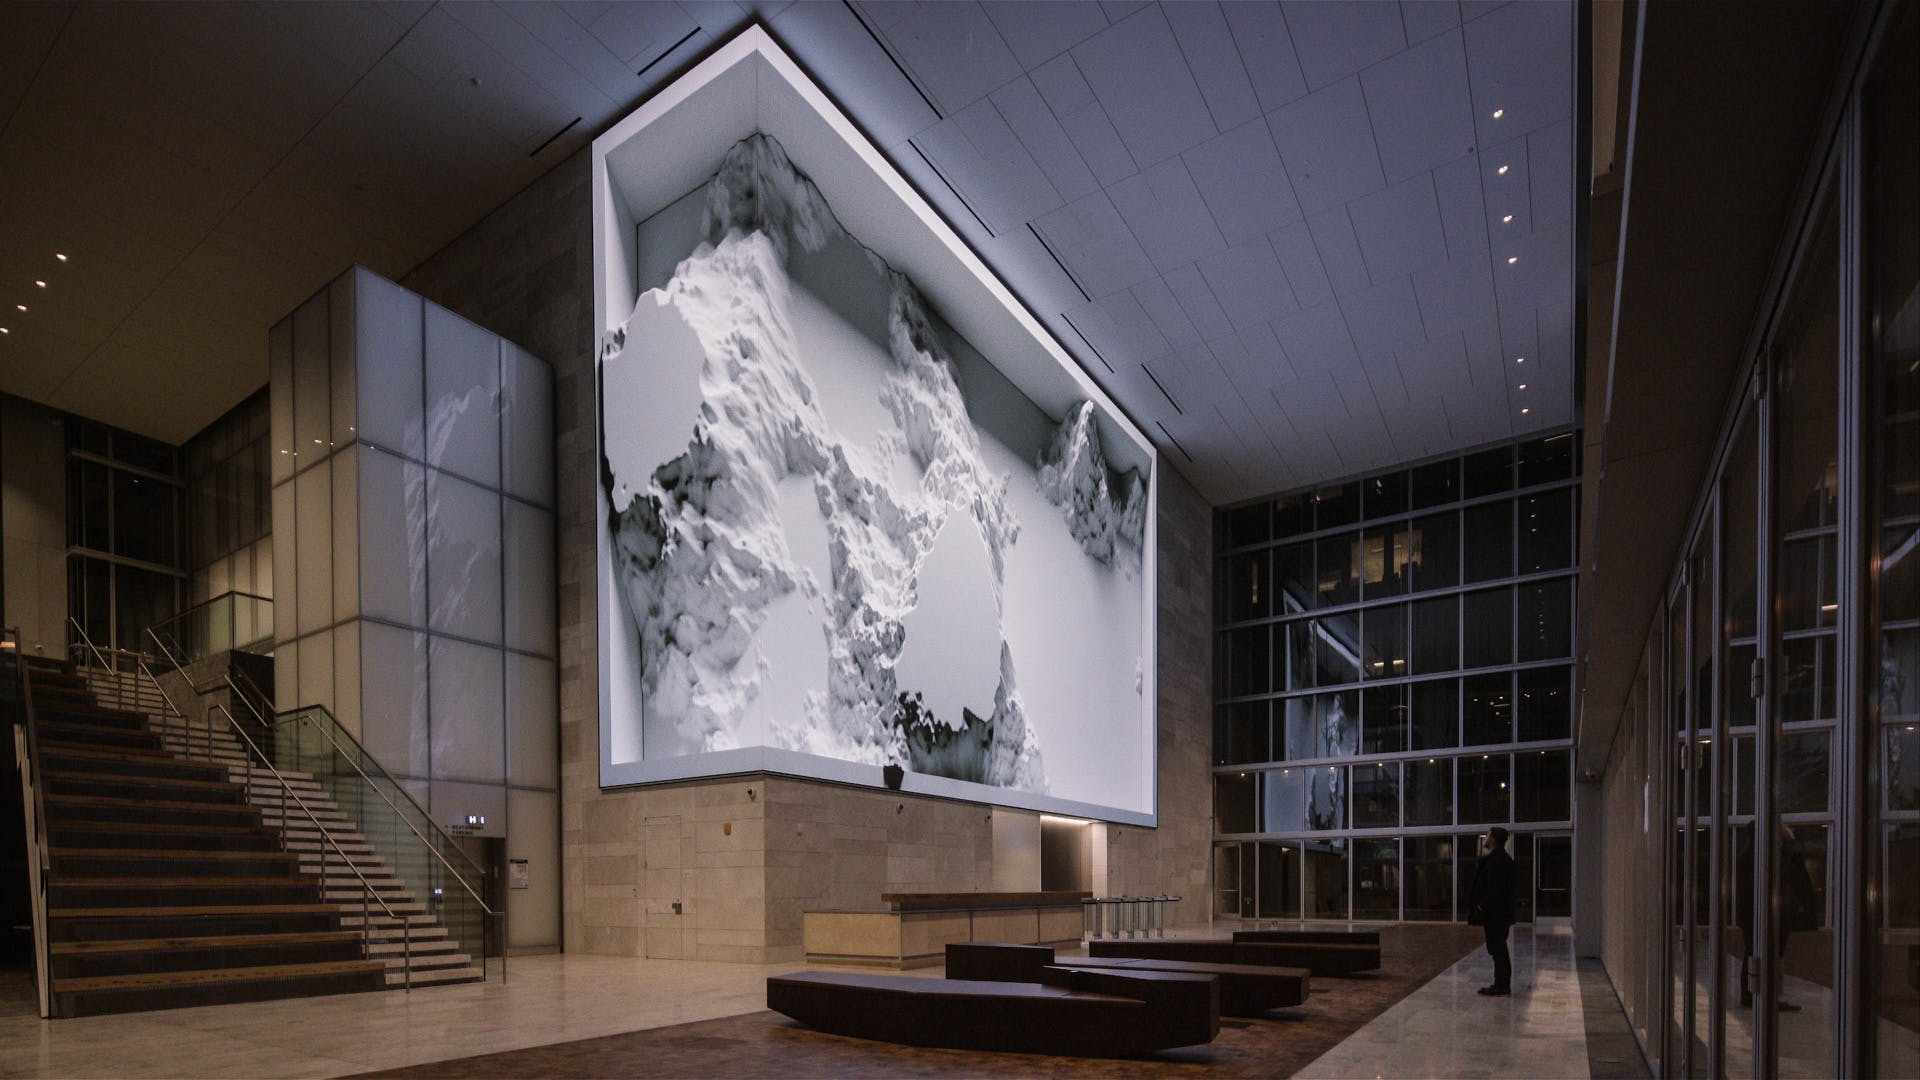 Refik Anadol digital art installations for the Salesforce building in San Francisco